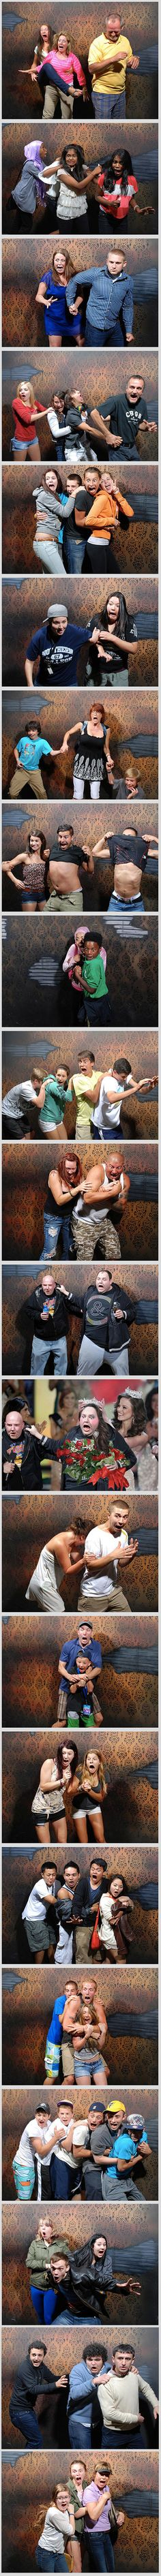 The Haunted House in Niagara Falls, Canada, prides itself of its world famous Nightmares Fear Factory attraction – and they sure got the pictures to support it. The funny pictures are shot by strategically placed secret cameras which capture the visitors at their most vulnerable stage. Now that's just doomed to be good!